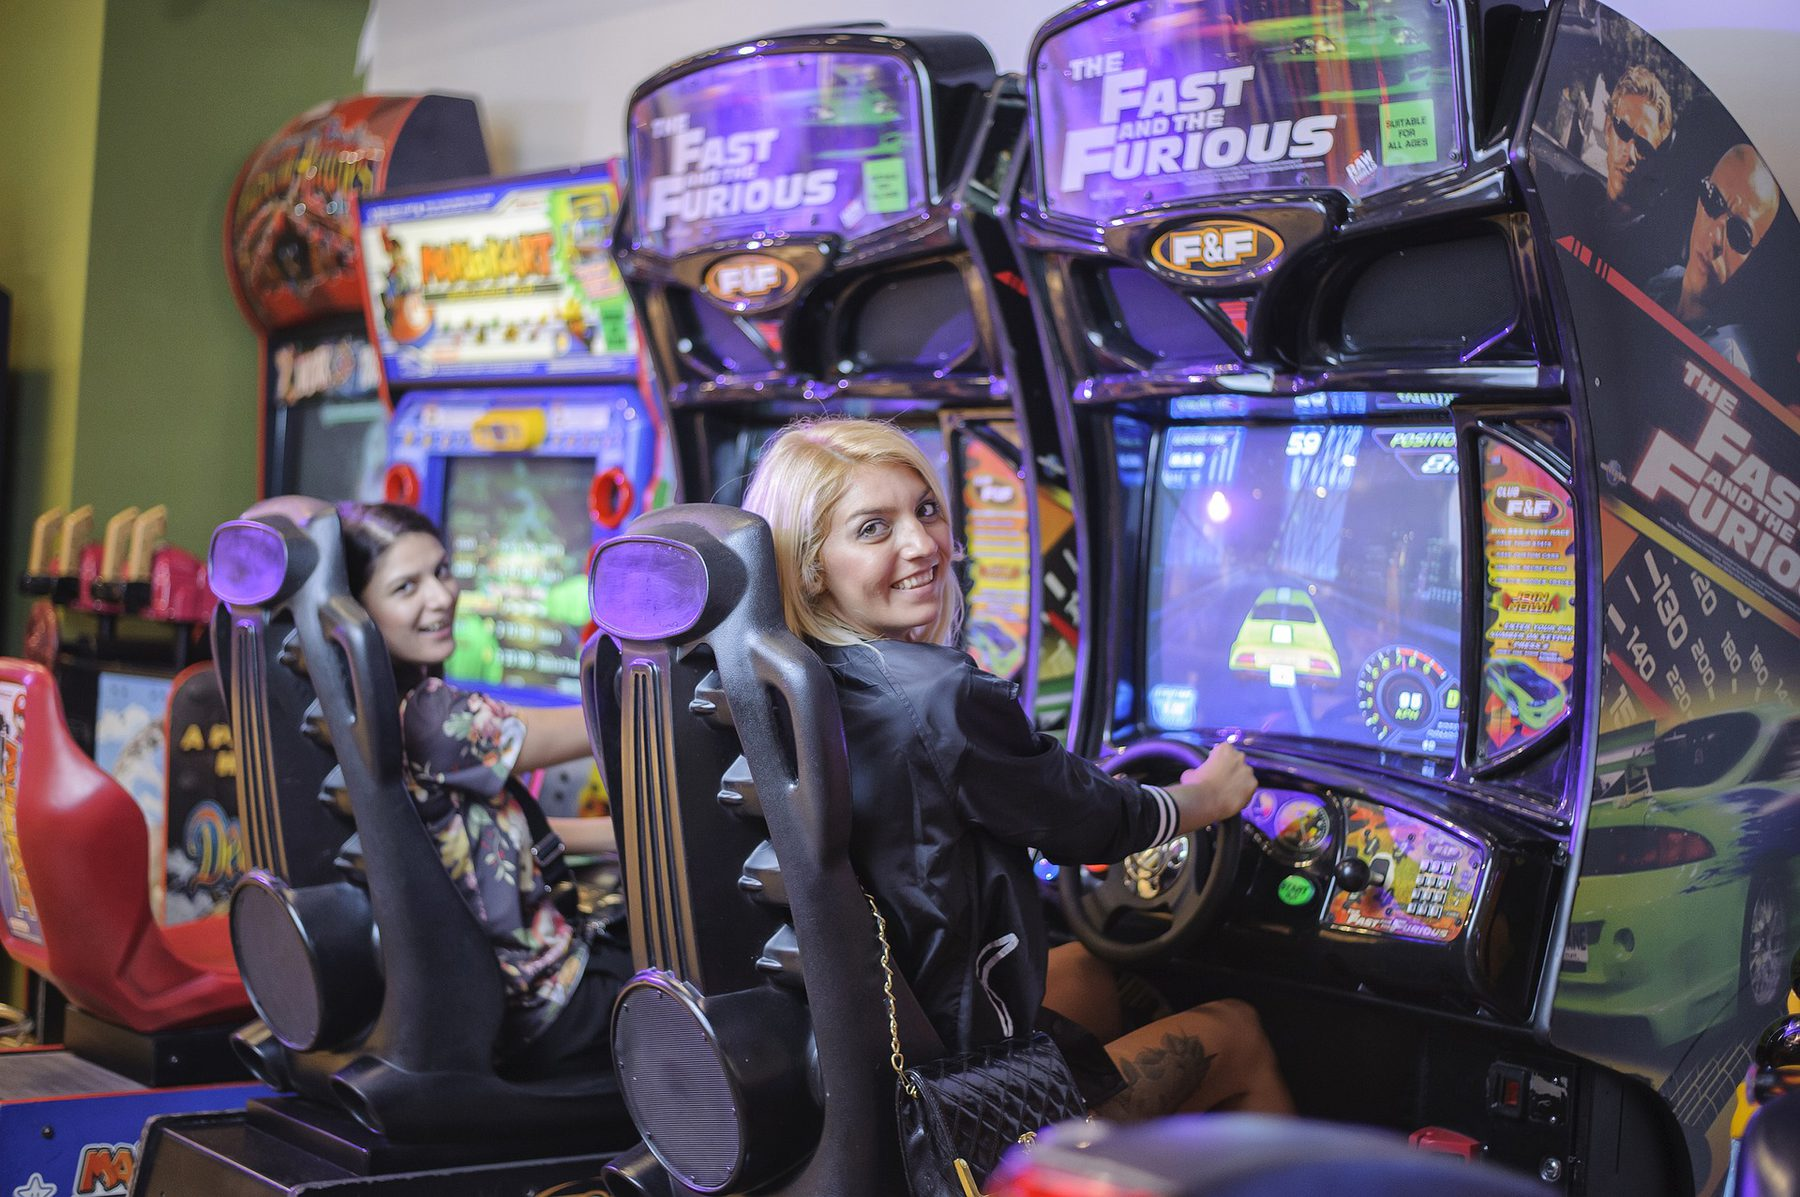 Sector Image (Leisure: Women playing on Arcade Machines)